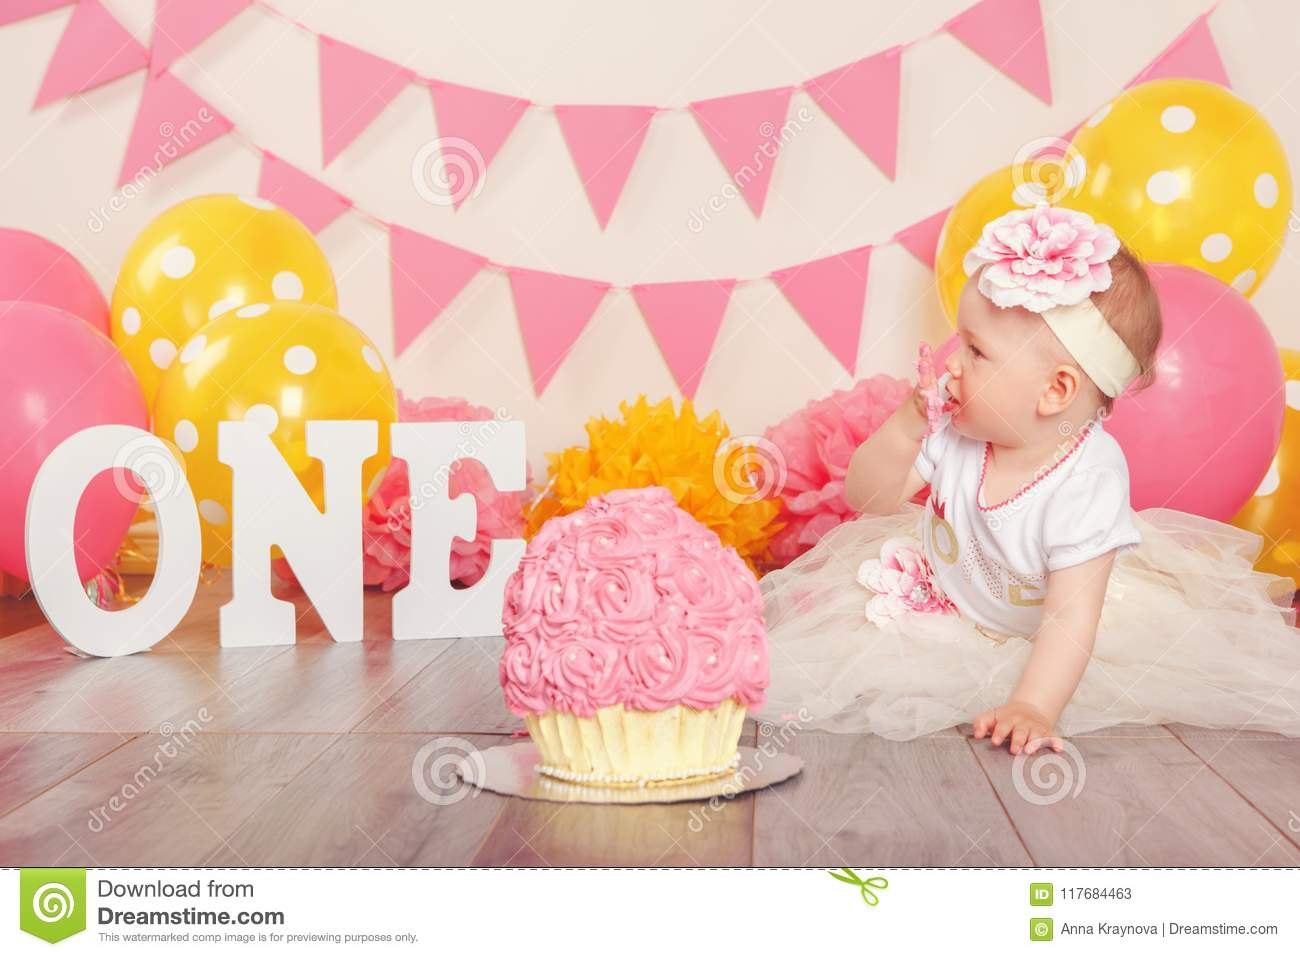 Remarkable Caucasian Baby Girl In Tutu Tulle Skirt Celebrating Her First Personalised Birthday Cards Beptaeletsinfo